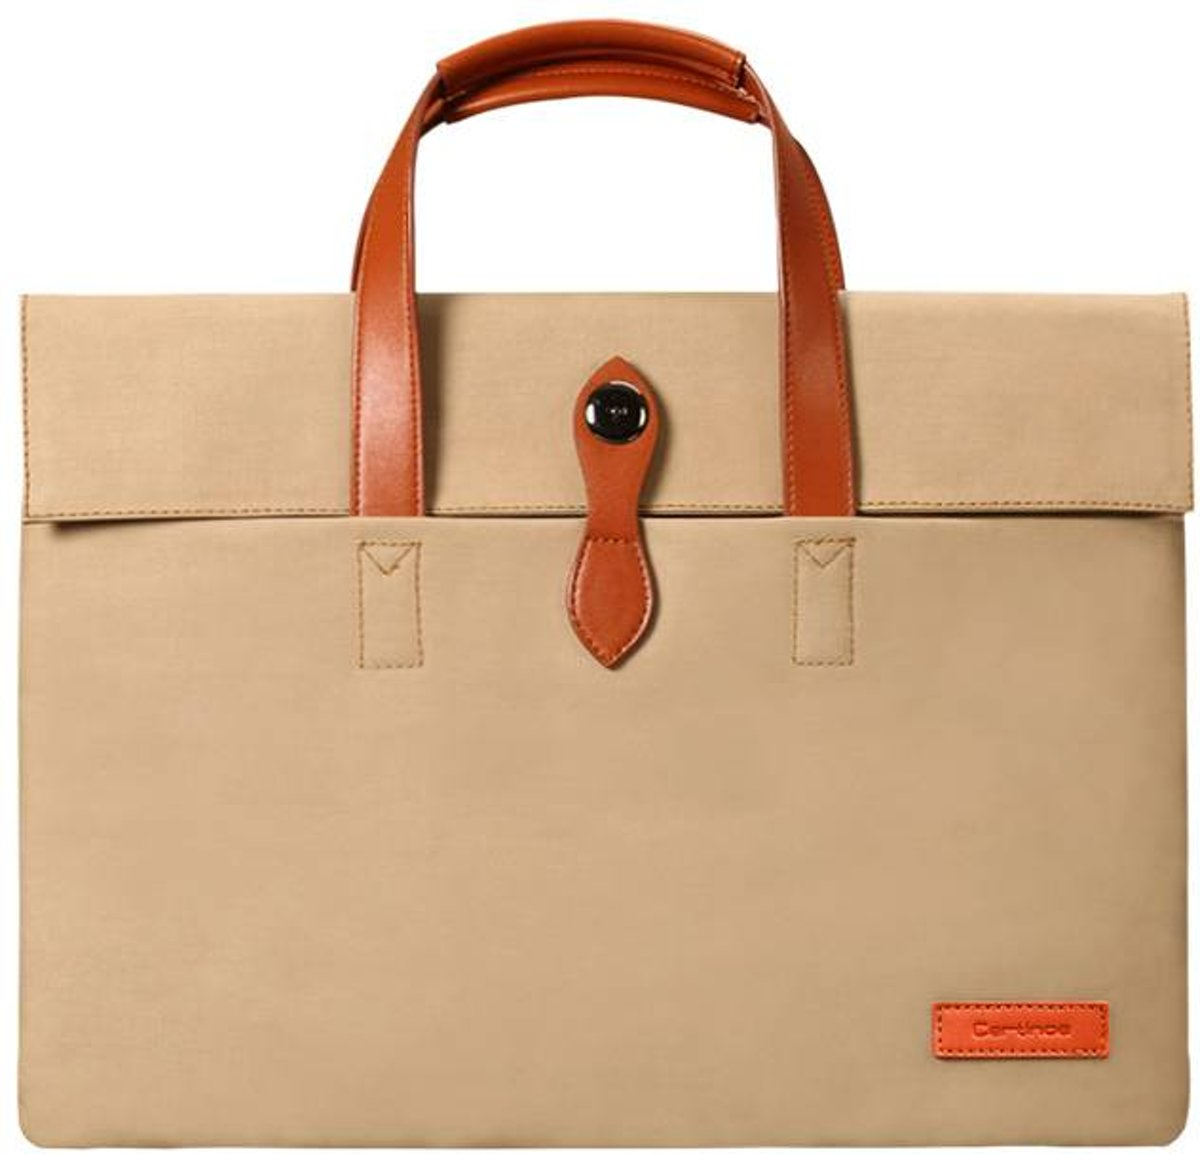 Cartinoe - fashion laptoptas 15 - khaki